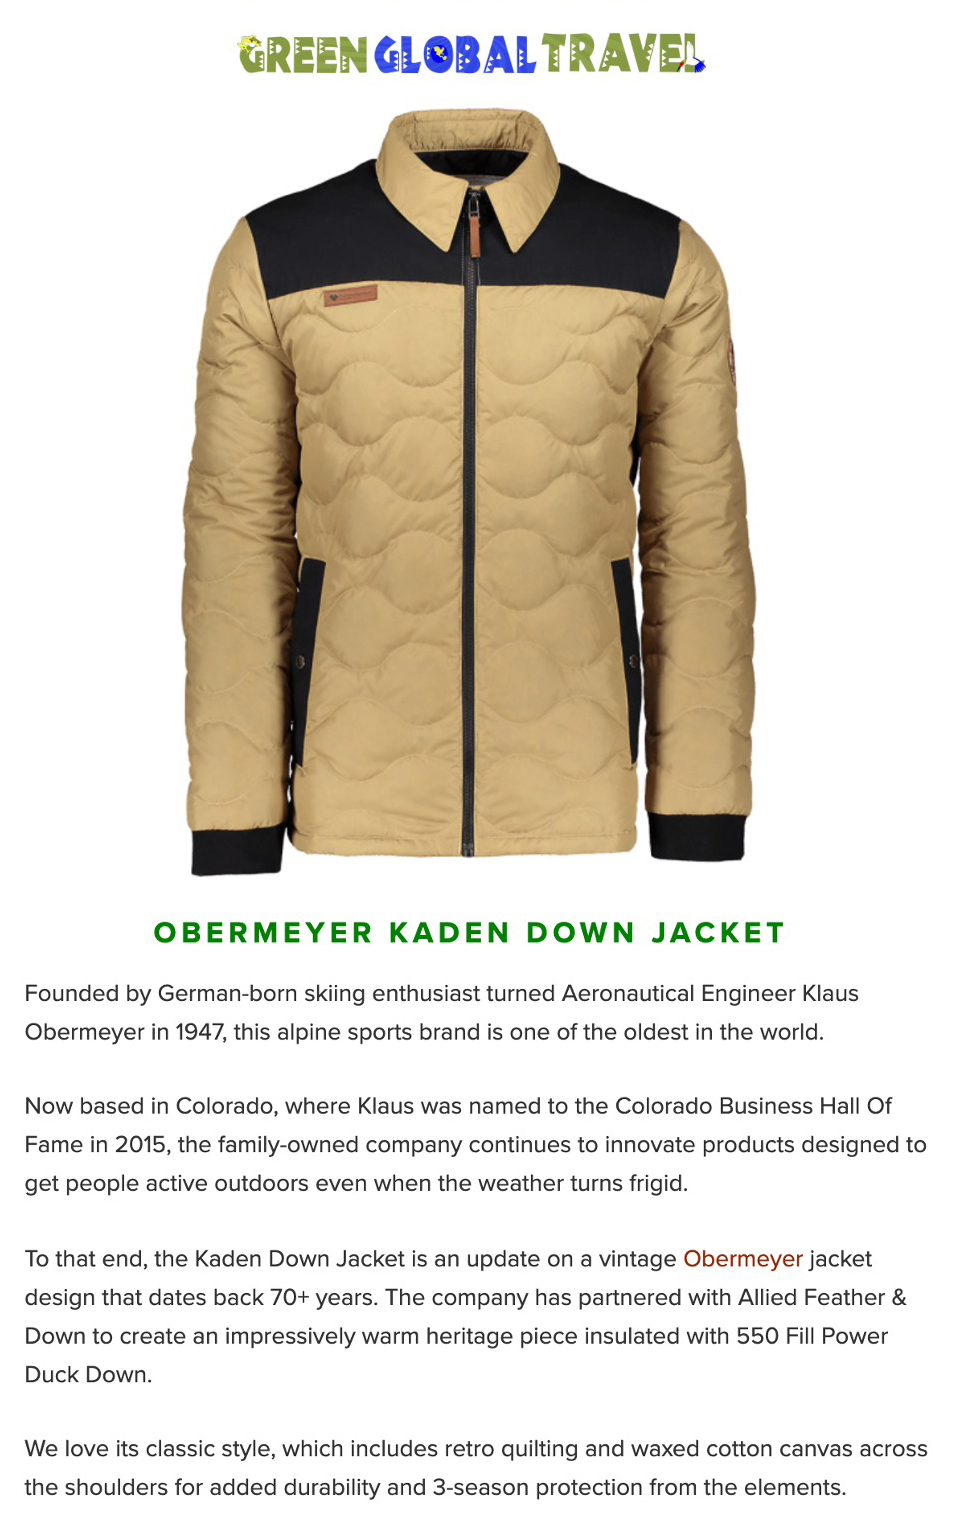 The Kaden Down Jacket